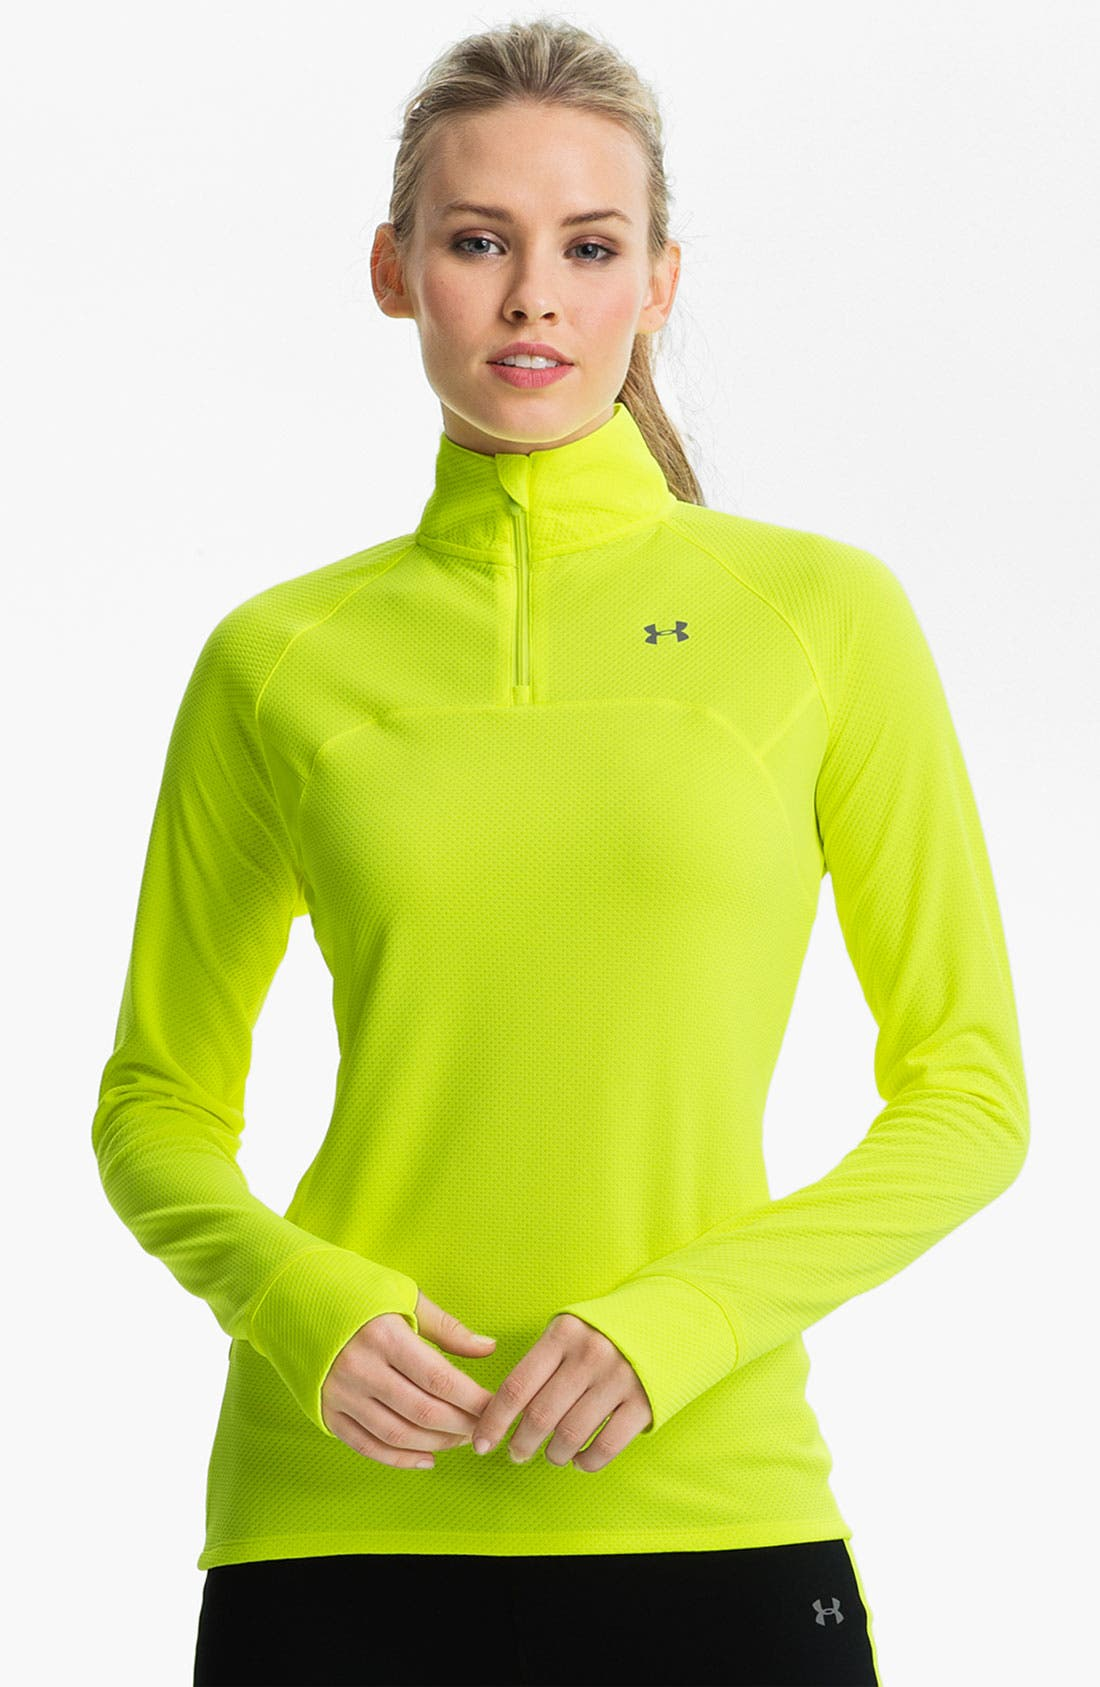 Main Image - Under Armour 'Escape' Quarter Zip Top